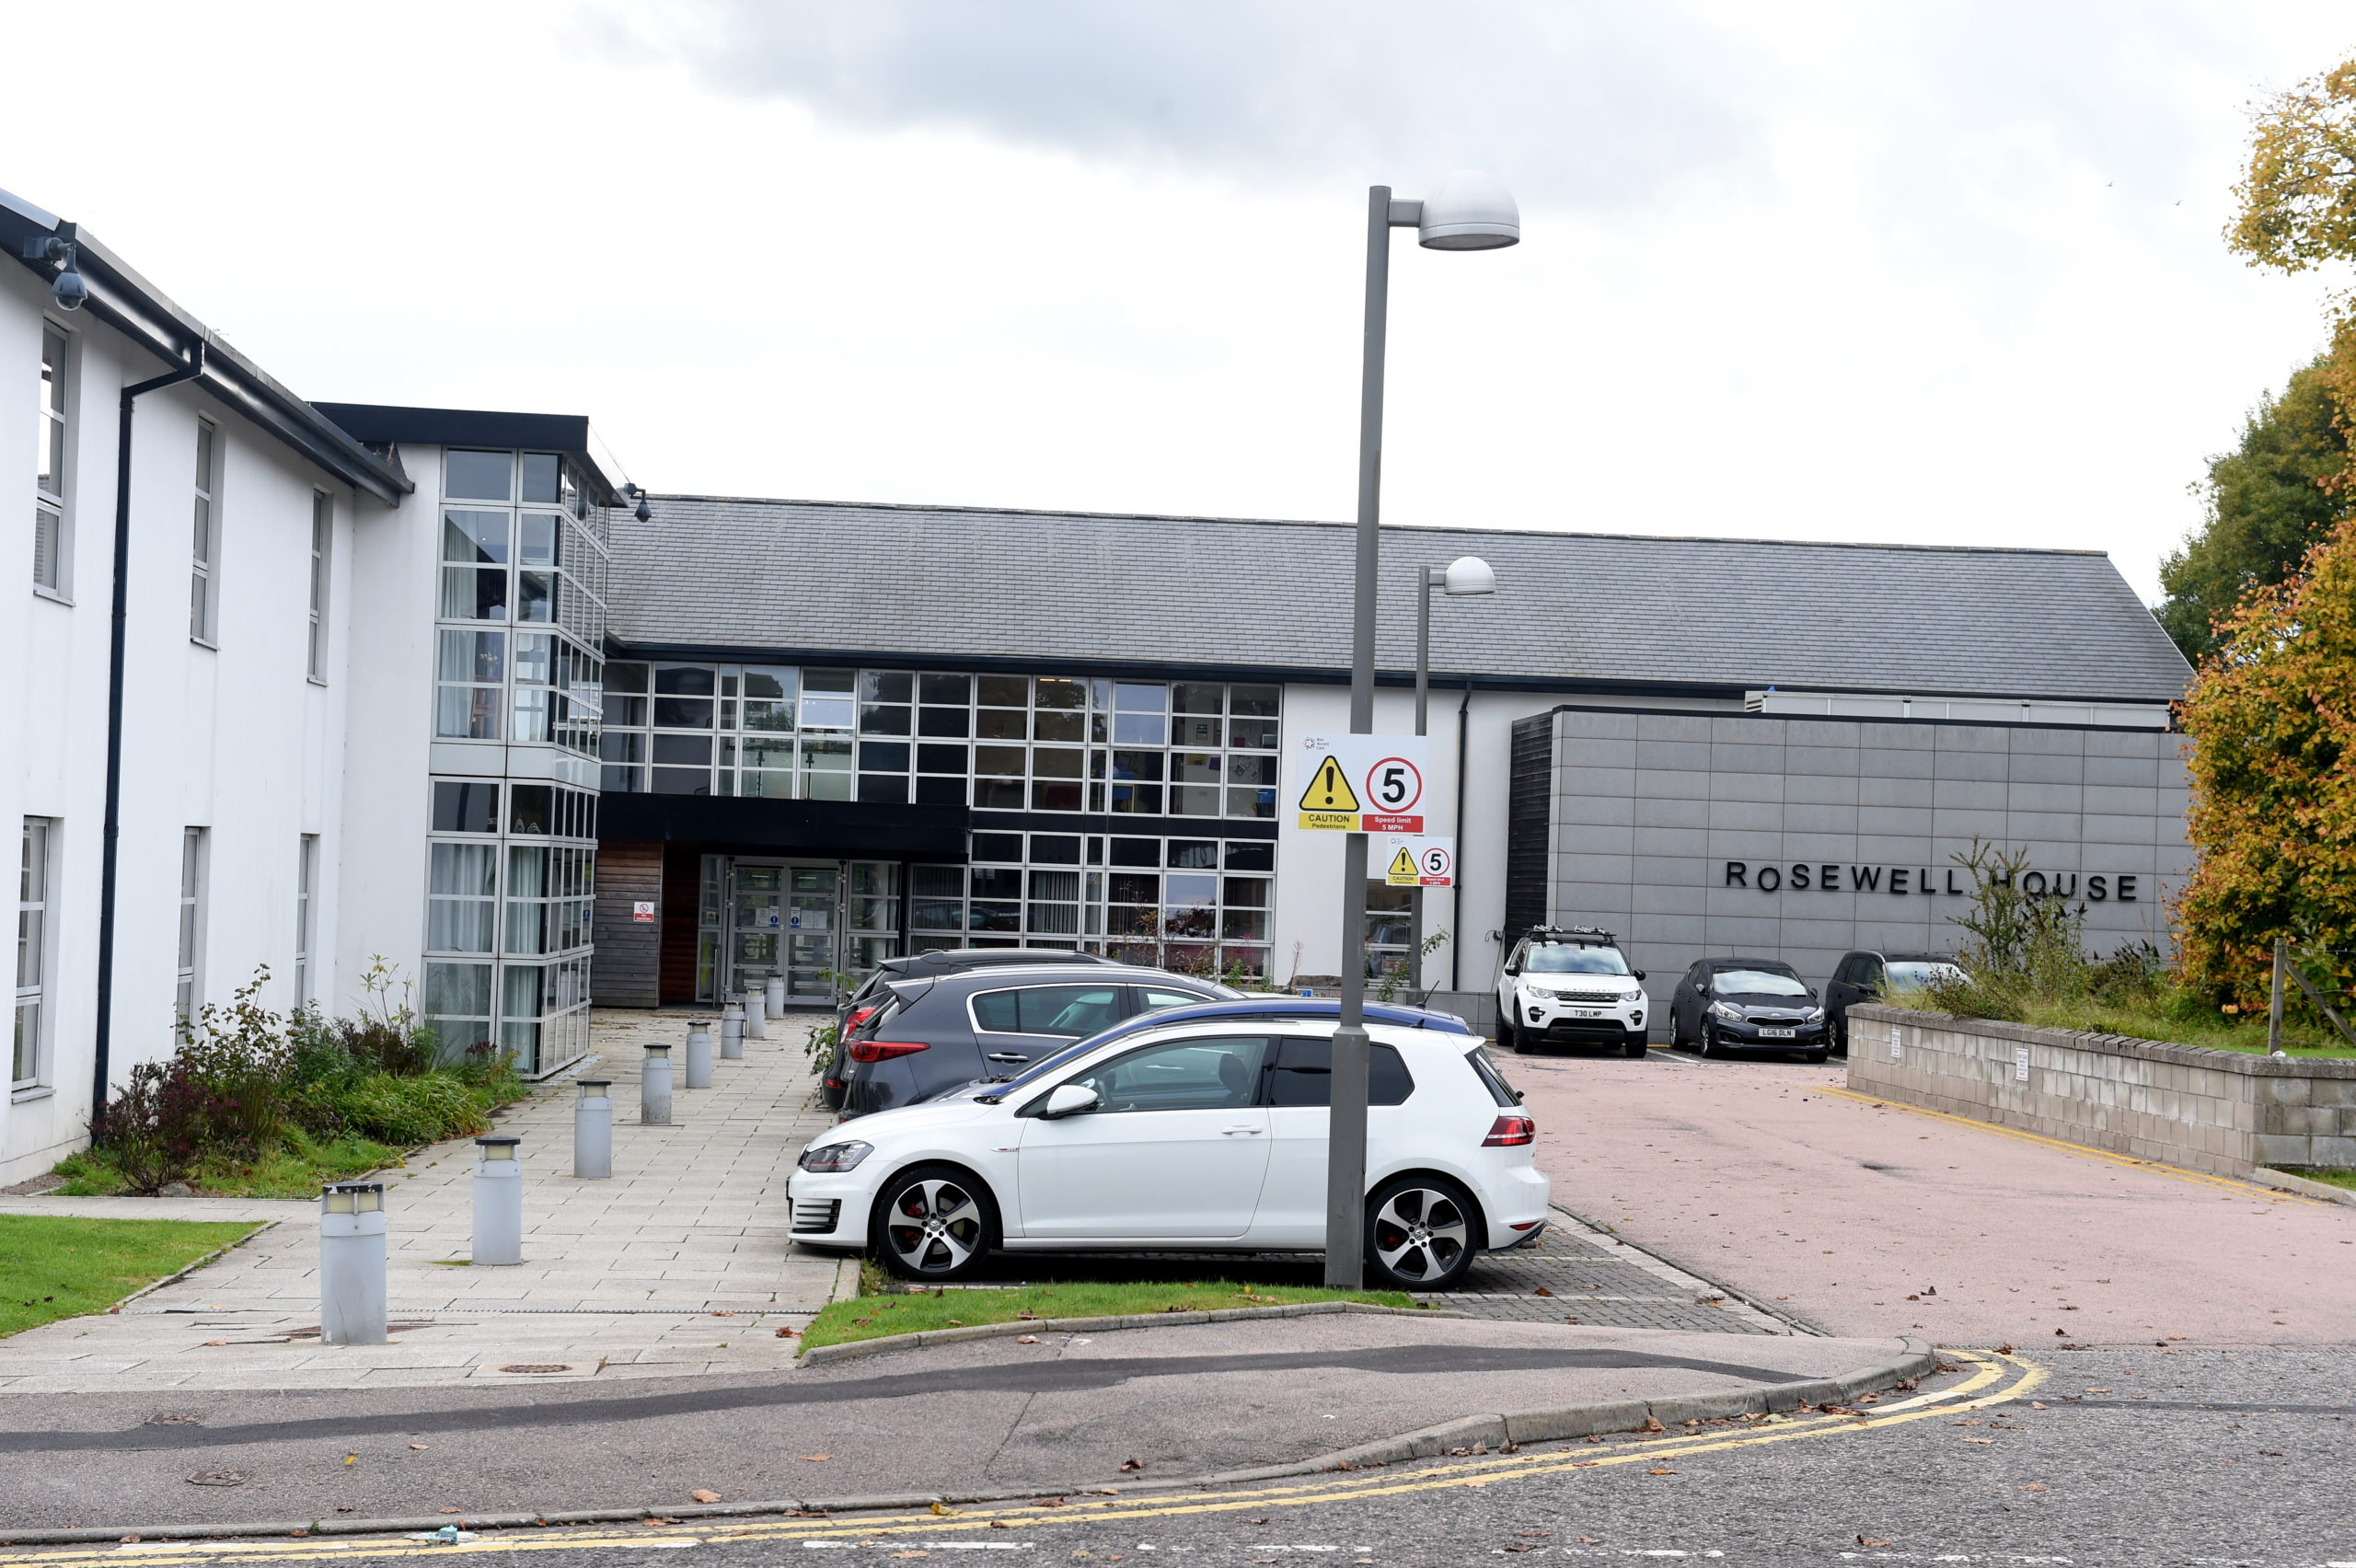 More than a dozen residents and staff at Aberdeen care home test positive for Covid – Evening Express